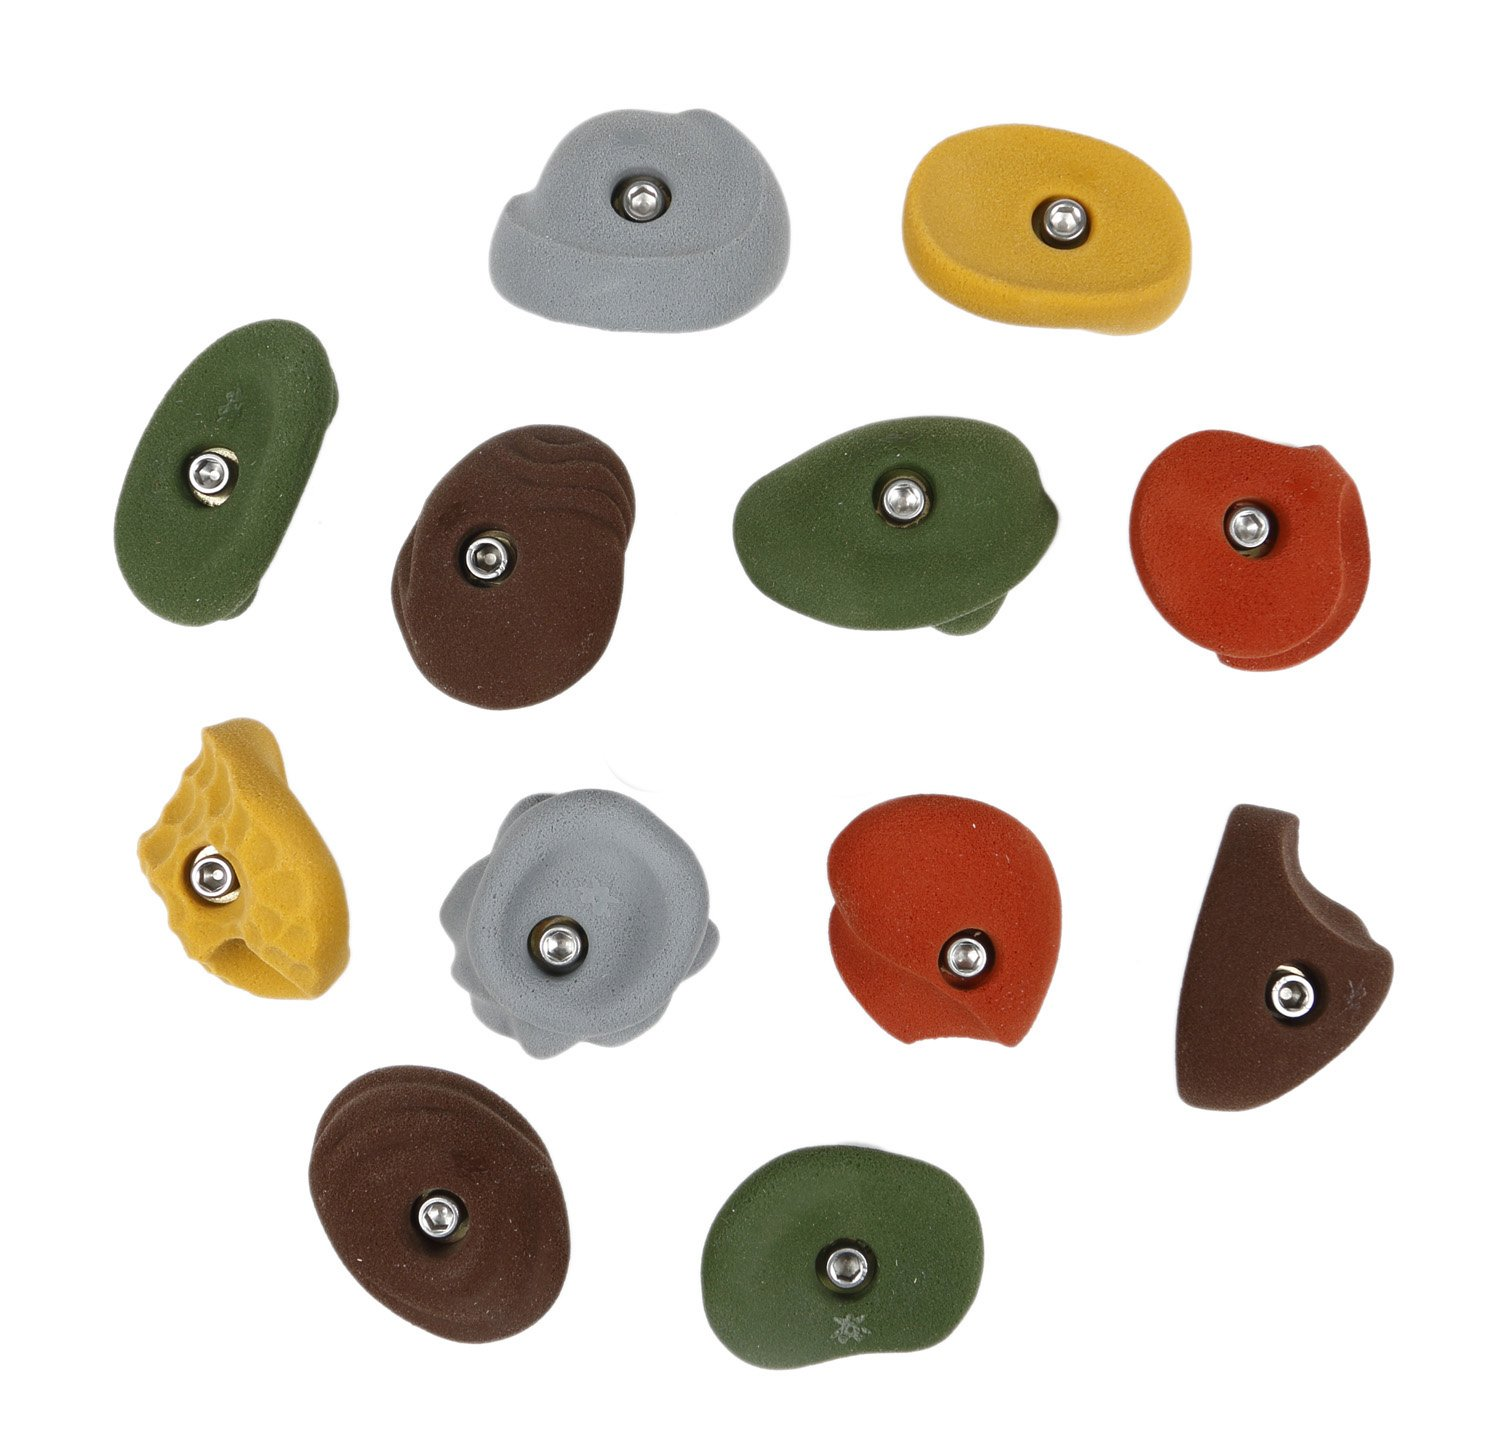 12 Large Classic Jugs | Bolt-on Rock Climbing Holds | Assorted Earth Tones